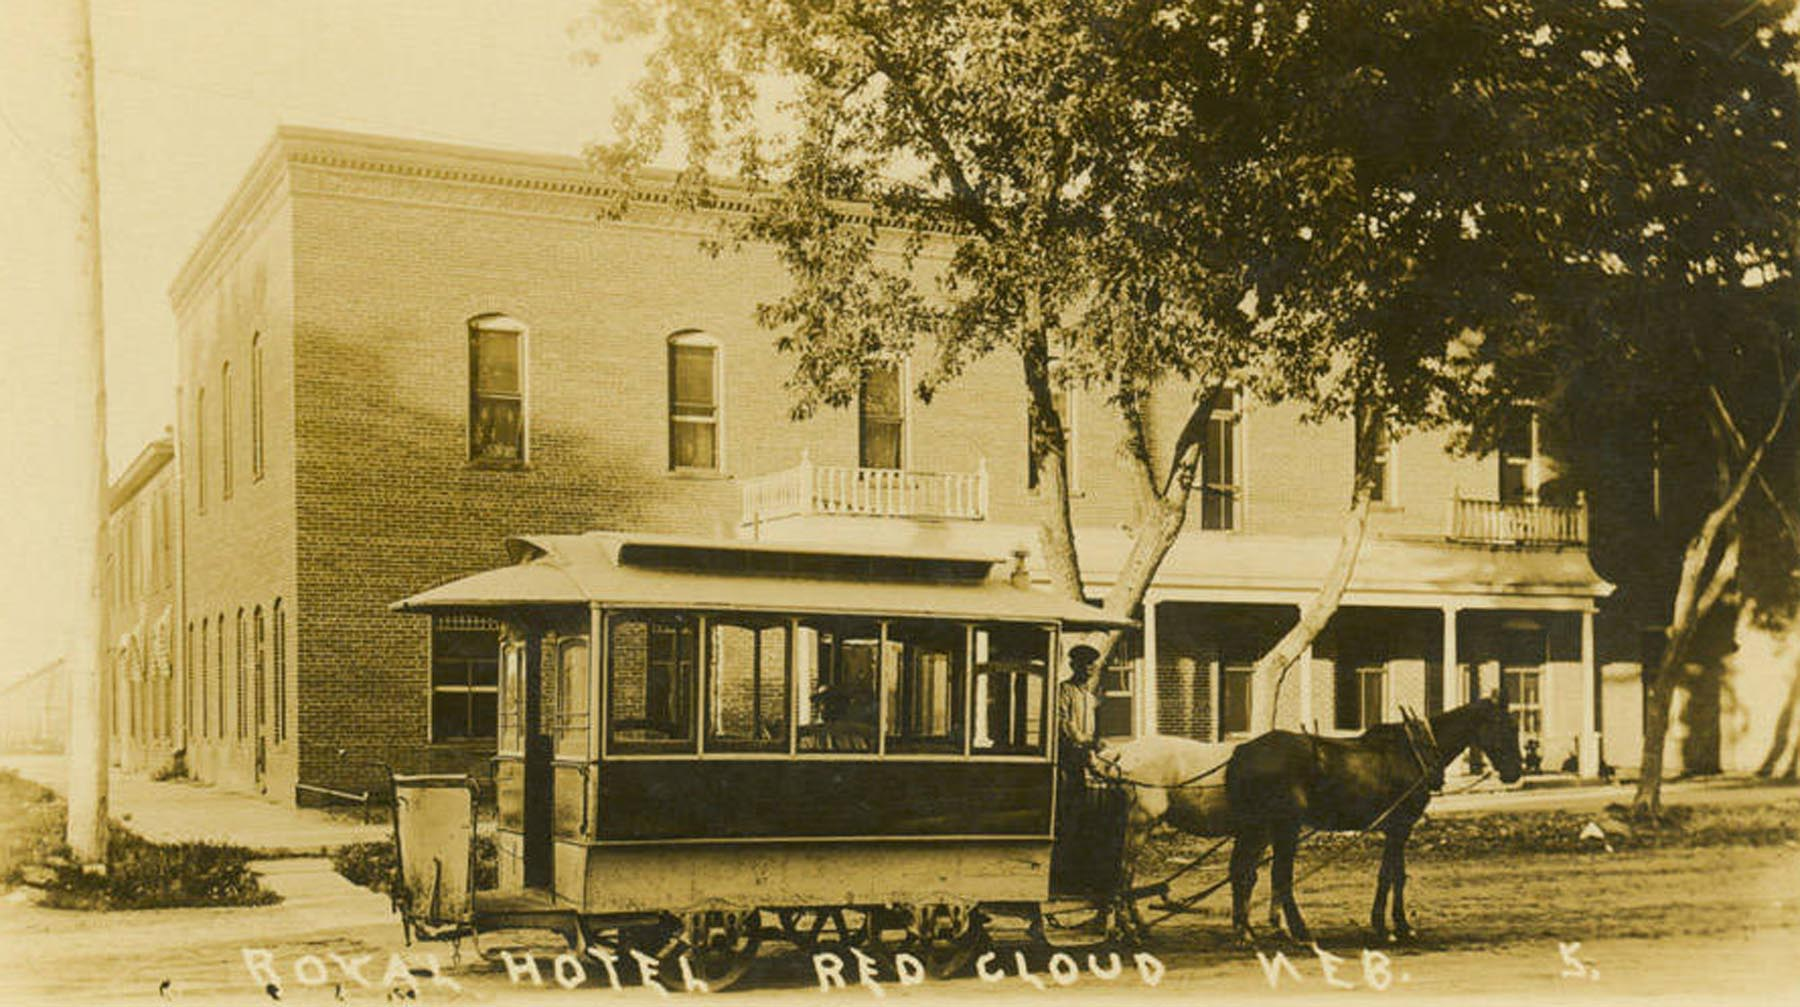 Streetcar in front of Royal Hotel